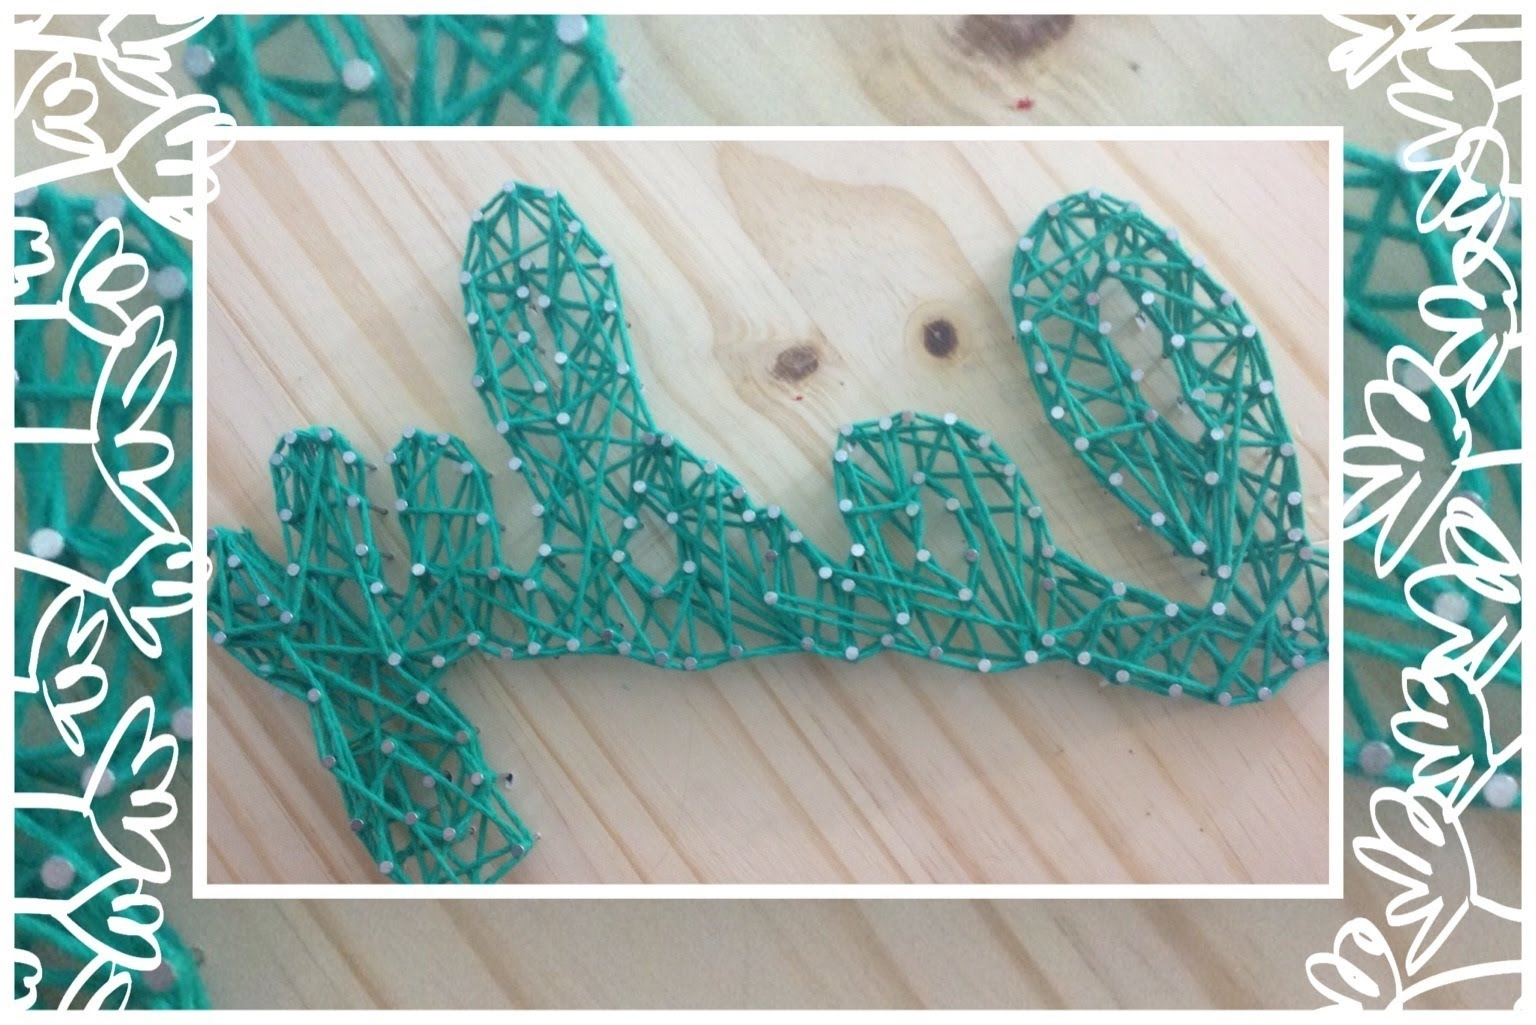 Recent Diy Nail String Art Tutorial – Youtube Intended For Nail And Yarn Wall Art (View 5 of 15)